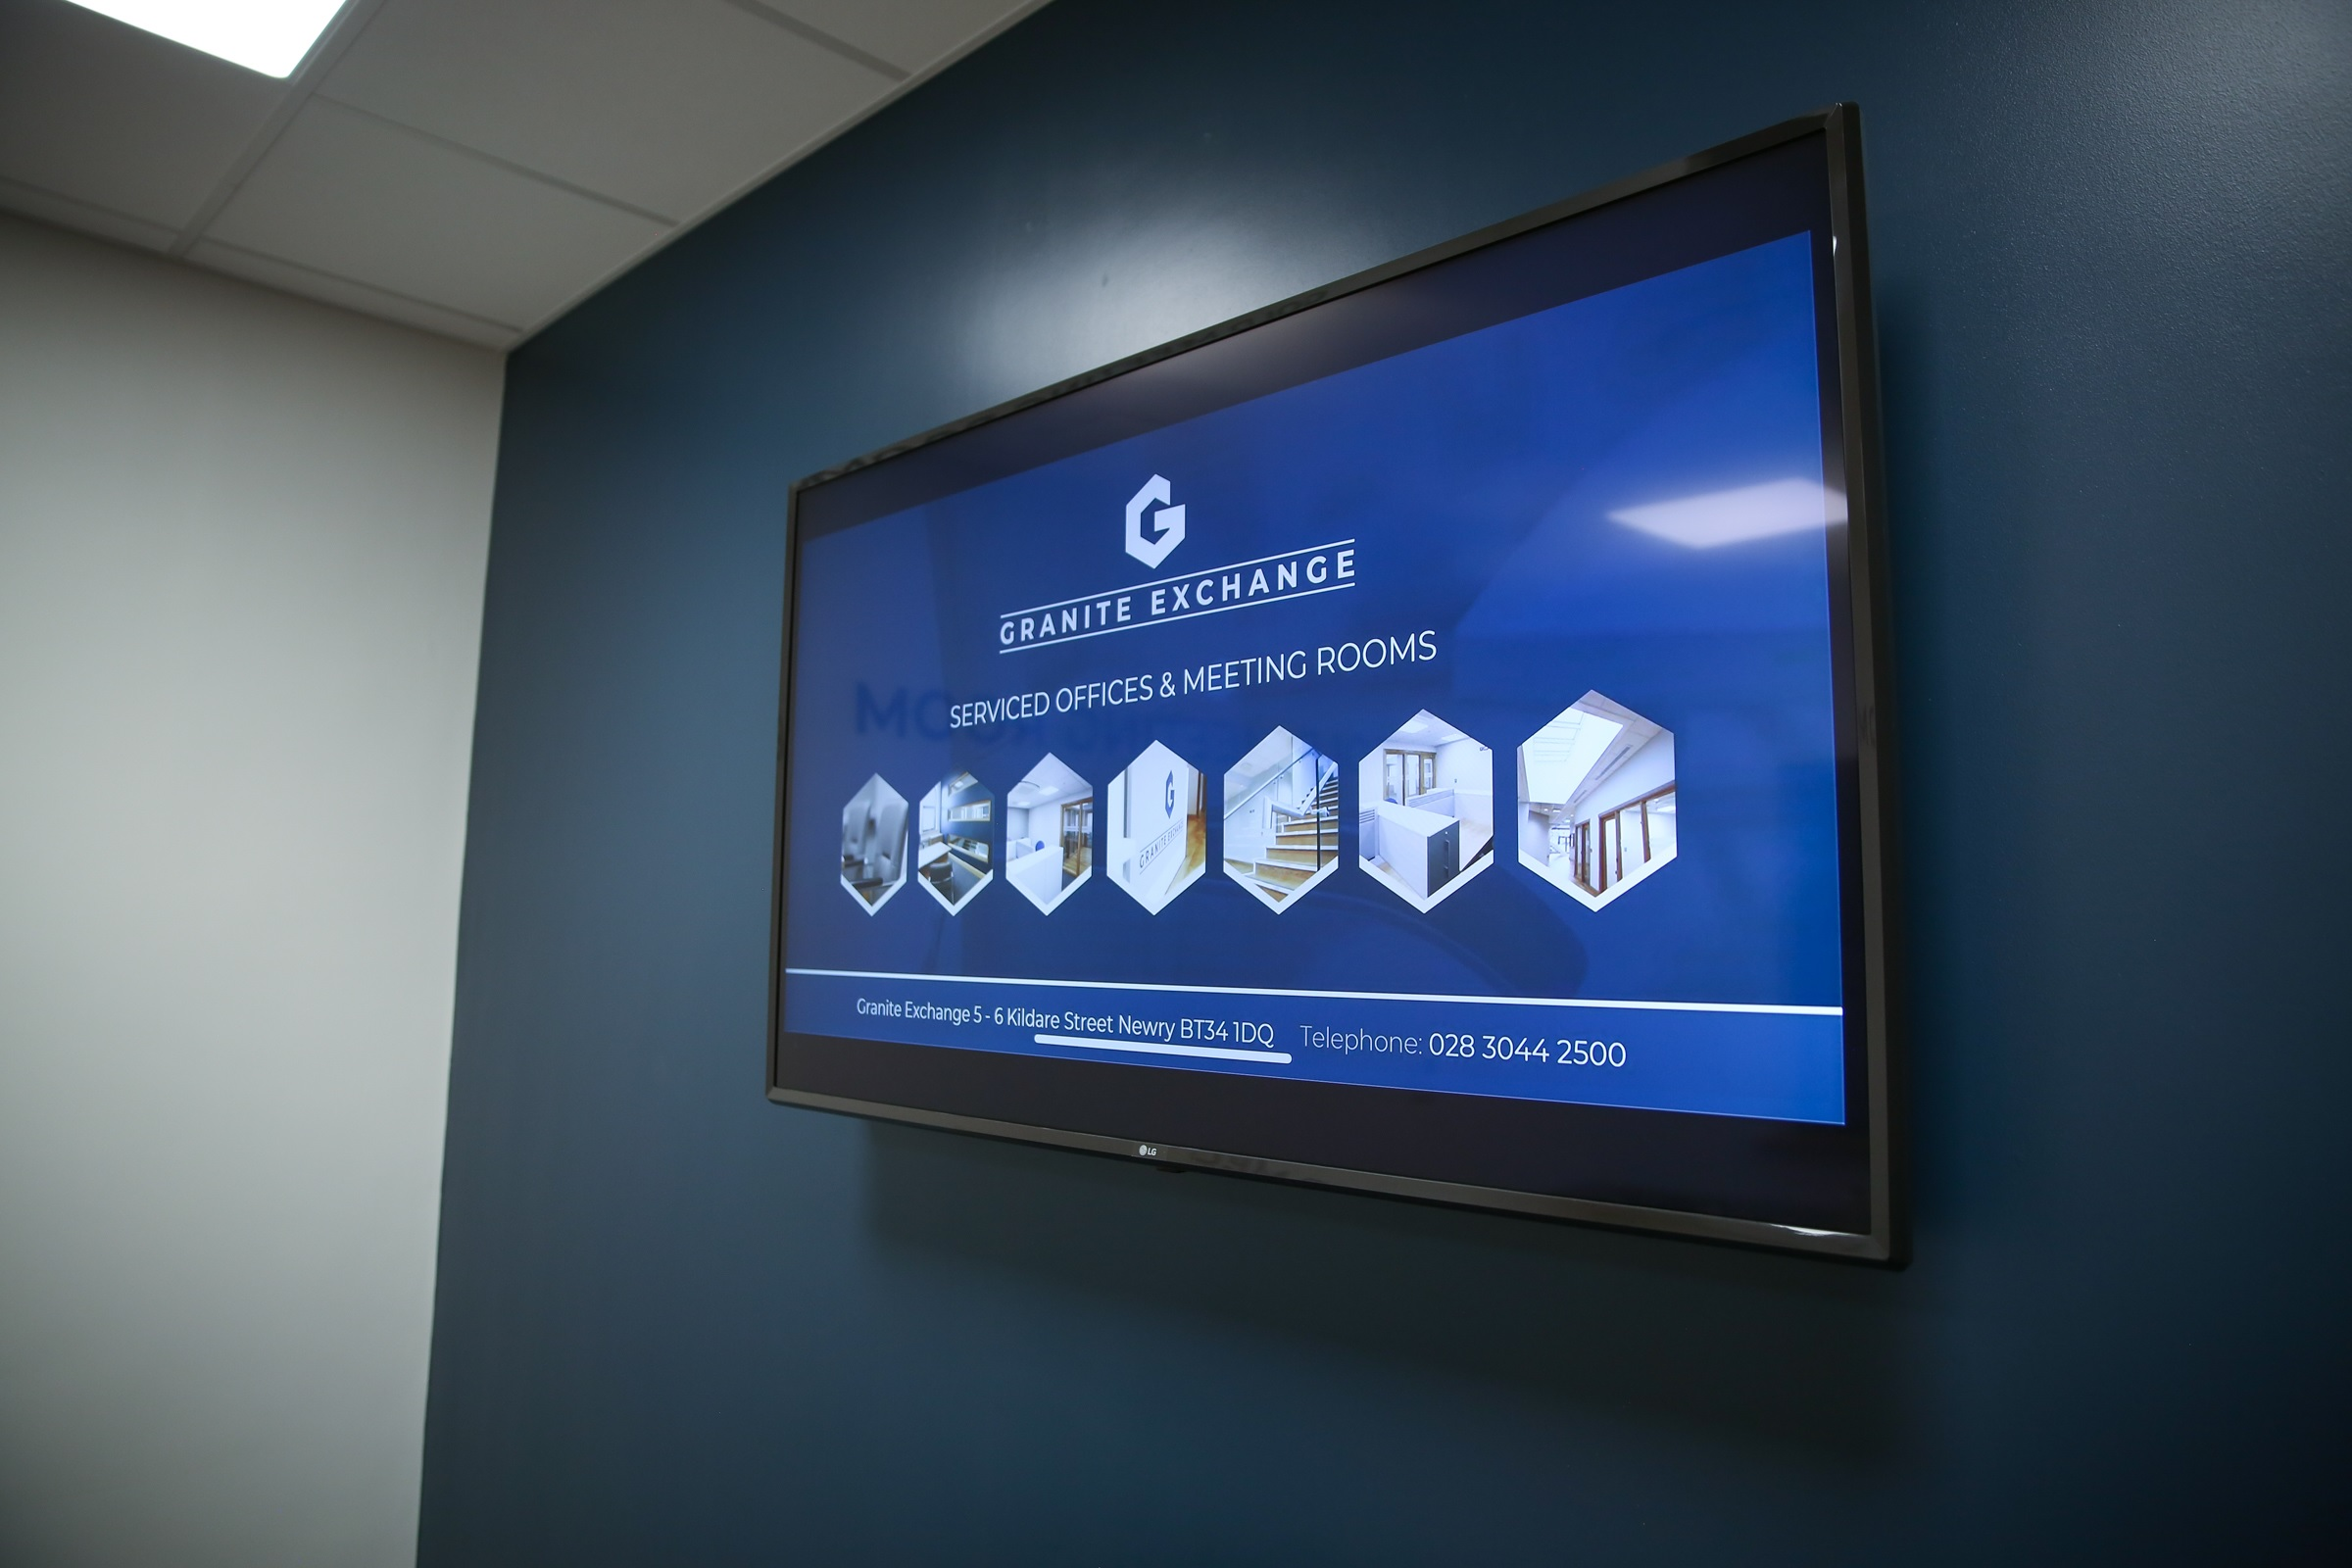 Granite Exchange Newry, Coworking space and meeting rooms in Newry, 5 powerful reasons to join Granite Exchange, Newry business news